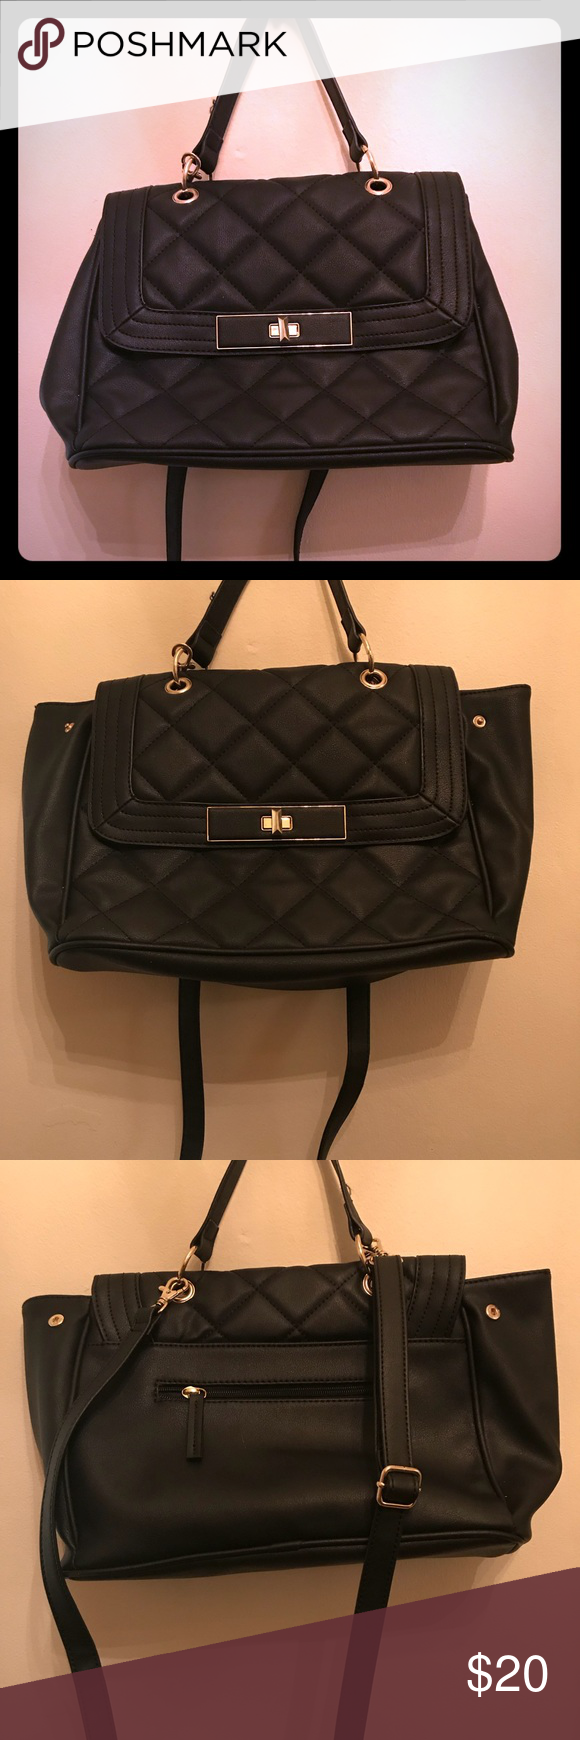 60c15ada75e4 Black Mossimo  over shoulder bag Black faux leather Mossimo brand name purse  . This is not real leather but stands in good quality. Medium sized with no  ...